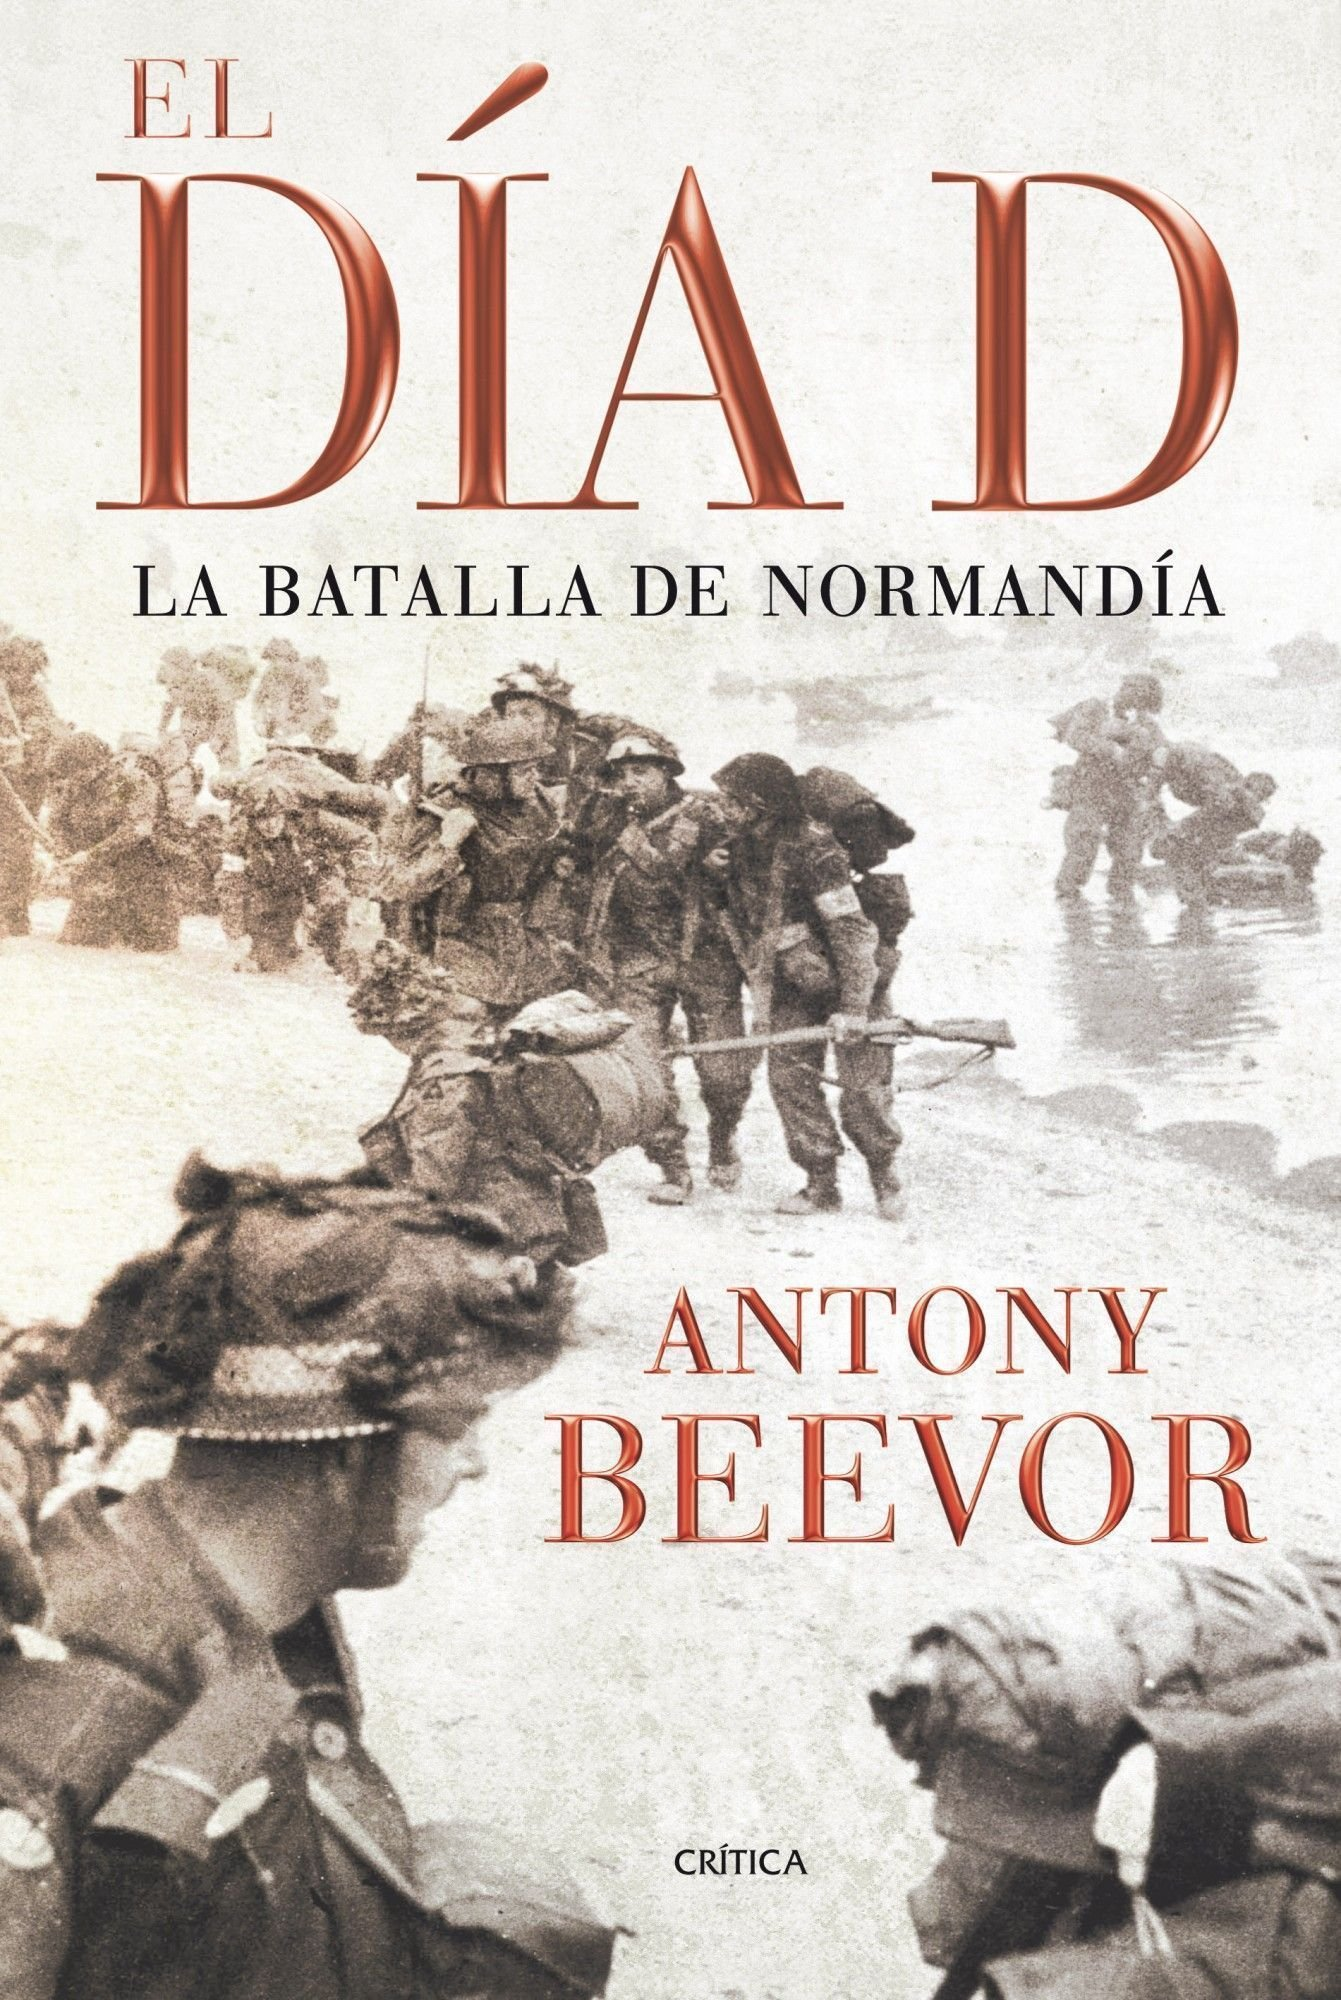 El Dia D (Spanish Edition) (Spanish) Paperback – July 8, 2009